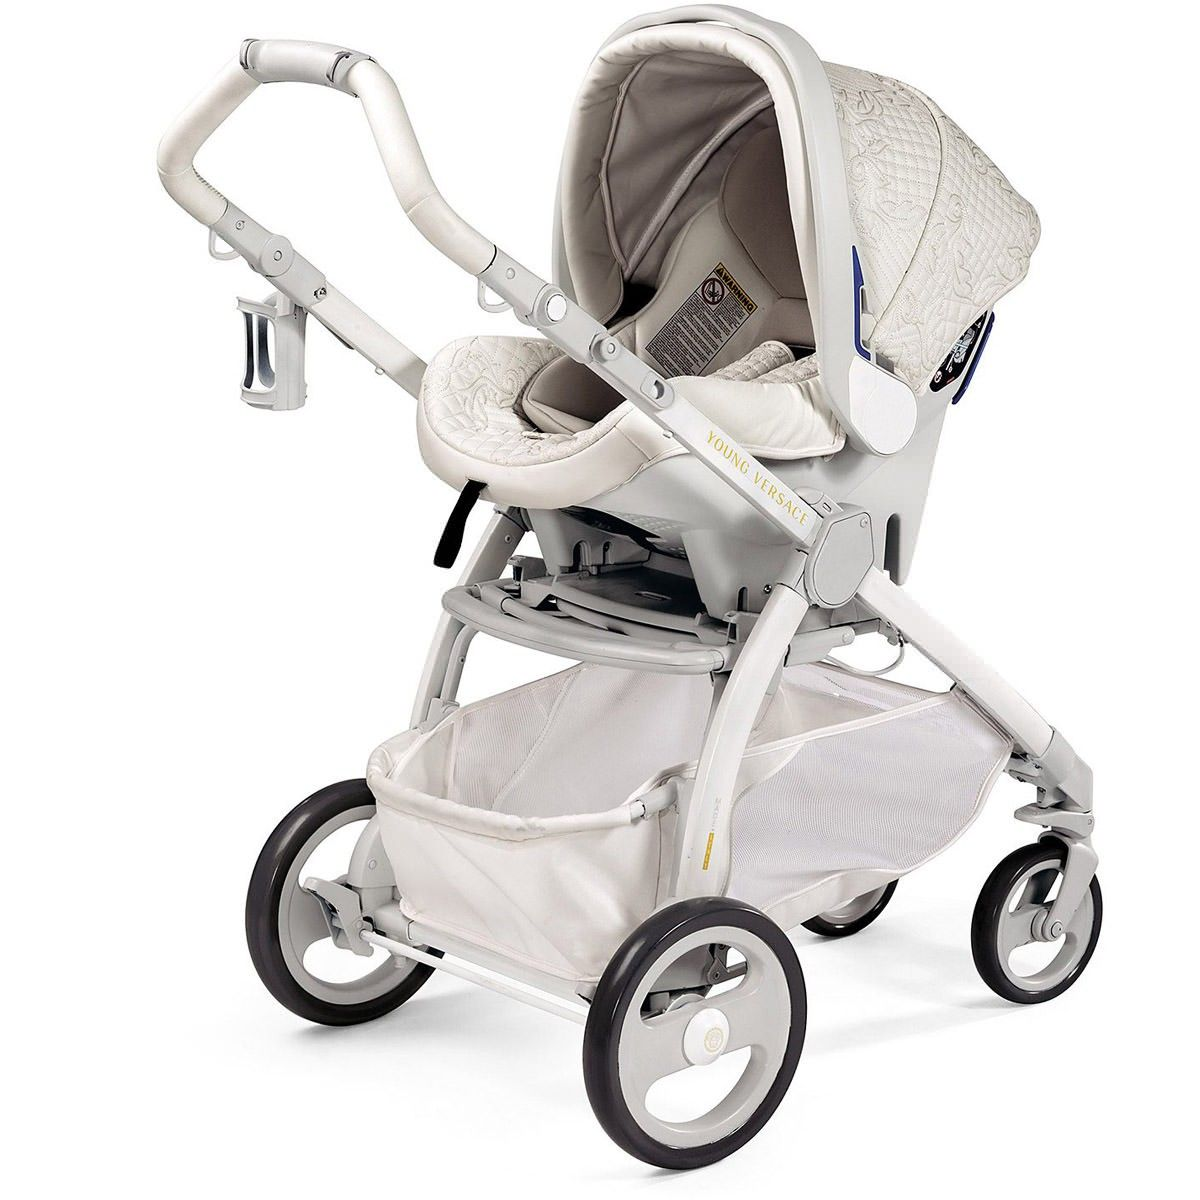 ae7f3095024c Young Versace Baby White Stroller and Travel Set   Mom   Pinterest ...